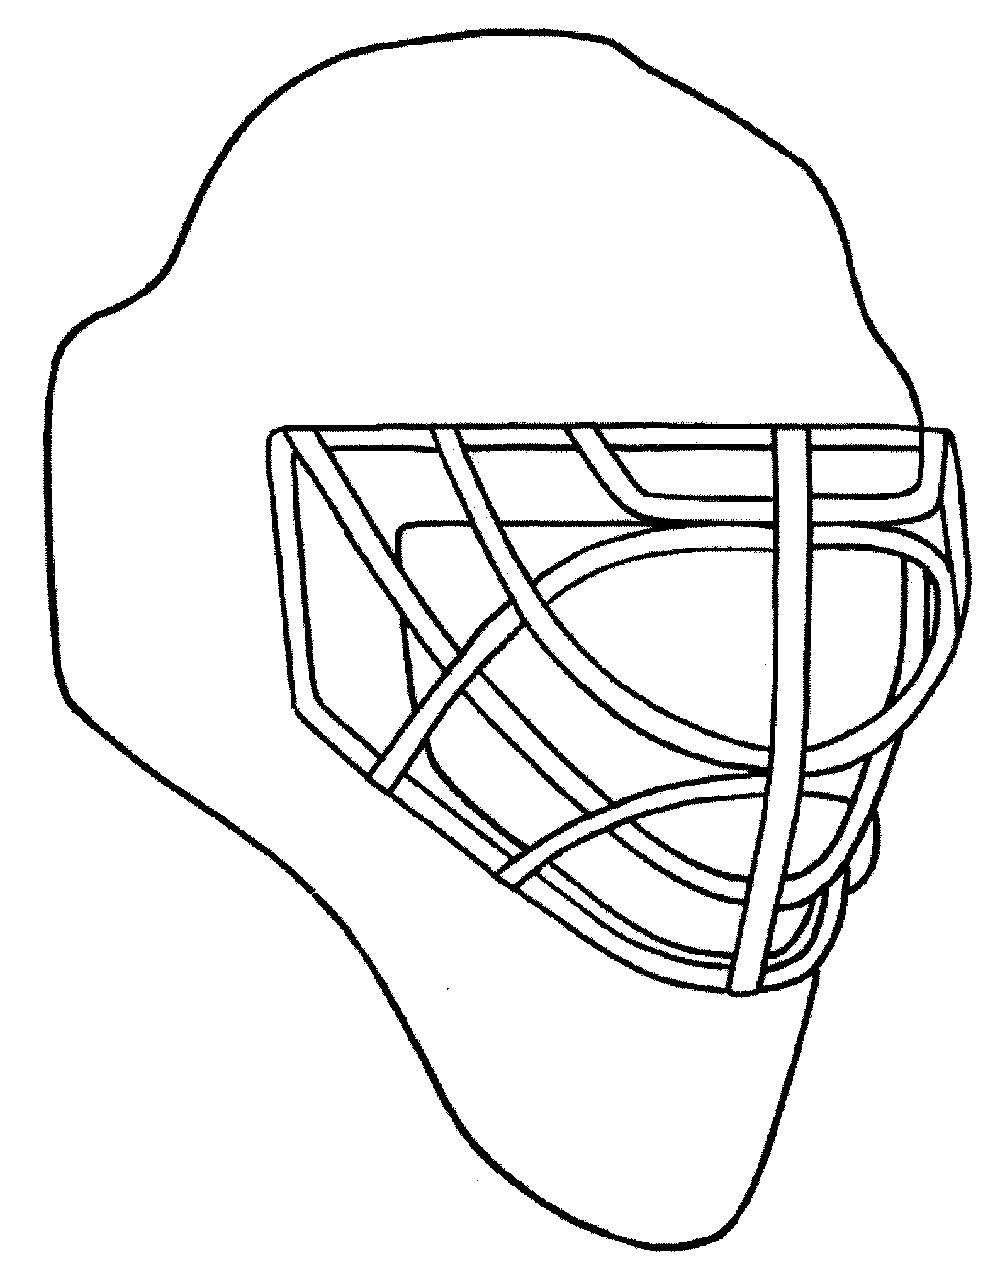 hockey goalie mask coloring pages coloring pages hockey goalie masks get coloring pages coloring hockey mask goalie pages